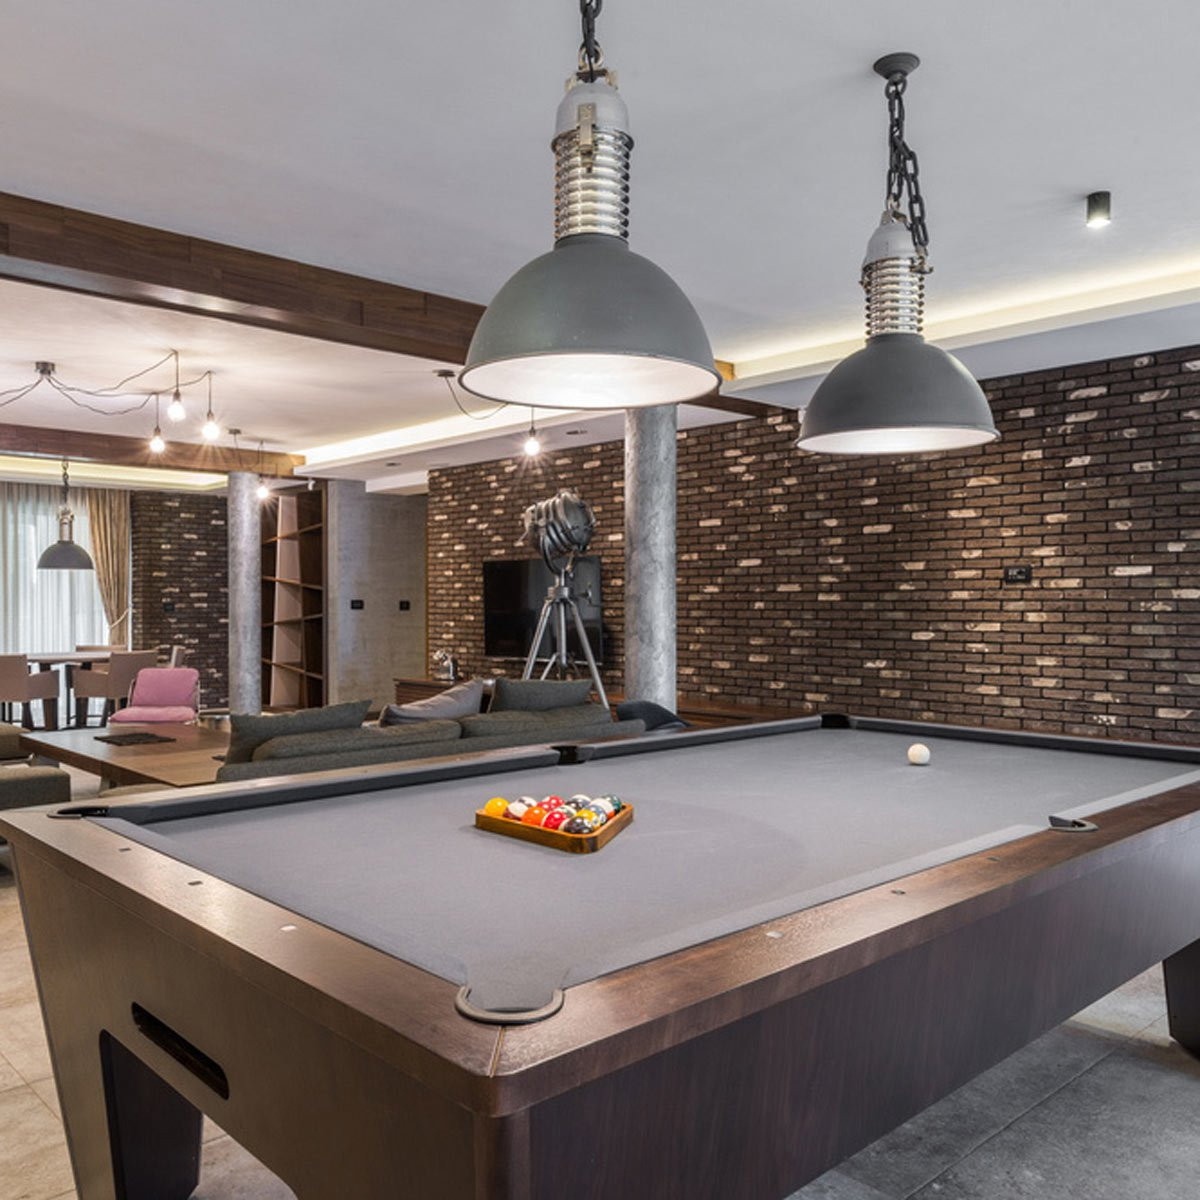 Best ideas about Cool Game Room Ideas . Save or Pin 25 Cool Game Room Ideas Now.